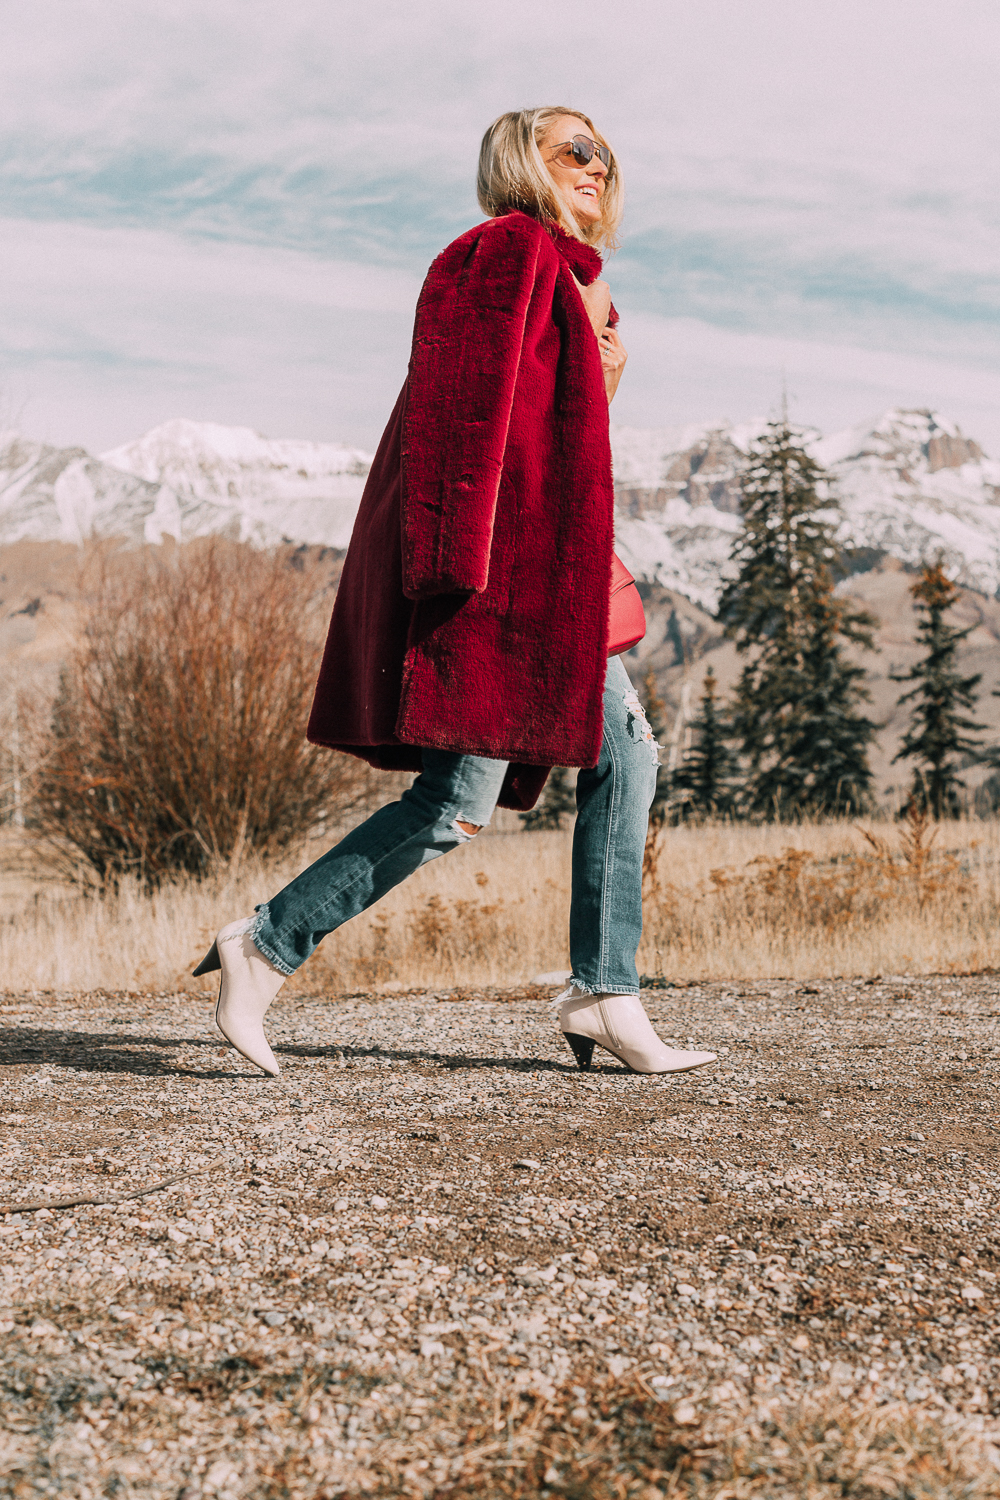 Bootie Trend, how to wear your ankle boots with dresses and jeans featuring white booties with a cone heel by Vince Camuto paired with a reversible faux fur coat, white turtleneck and Mother dazzler jeans